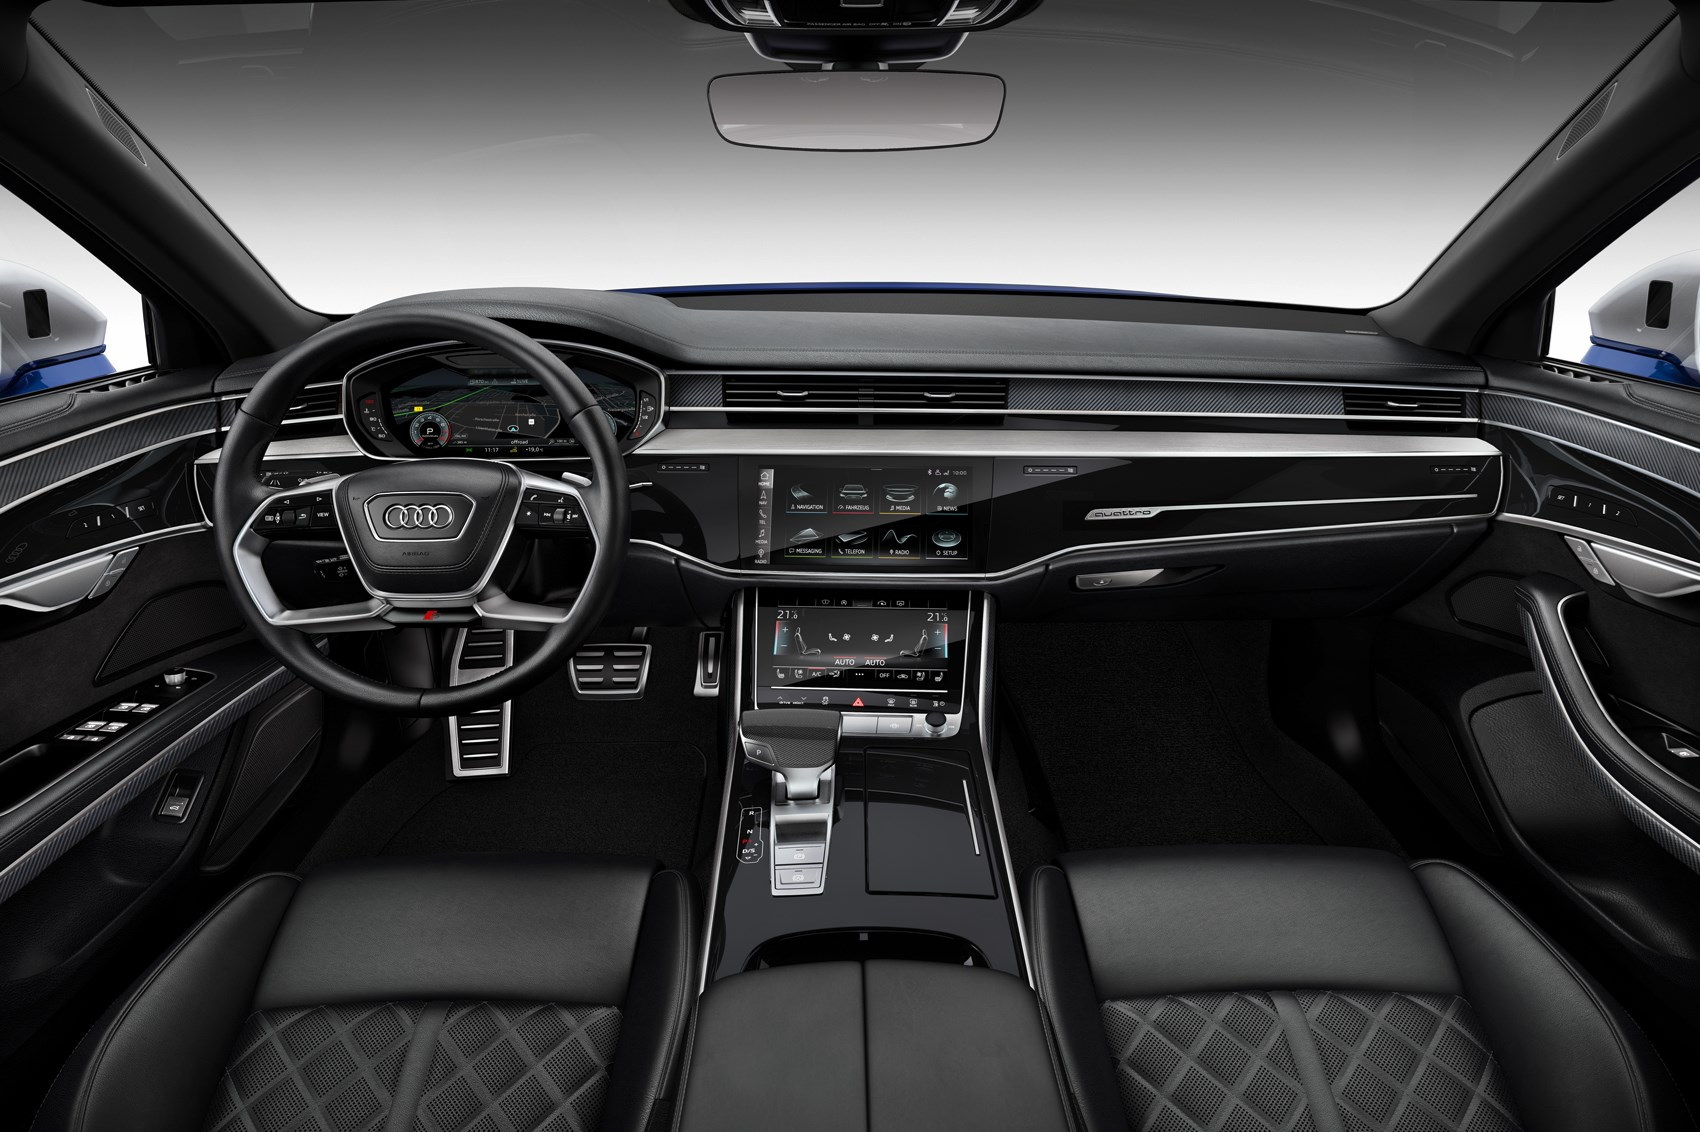 Behold! 2020 Audi S8 Arrives With Sleek Styling And Lots Of Power